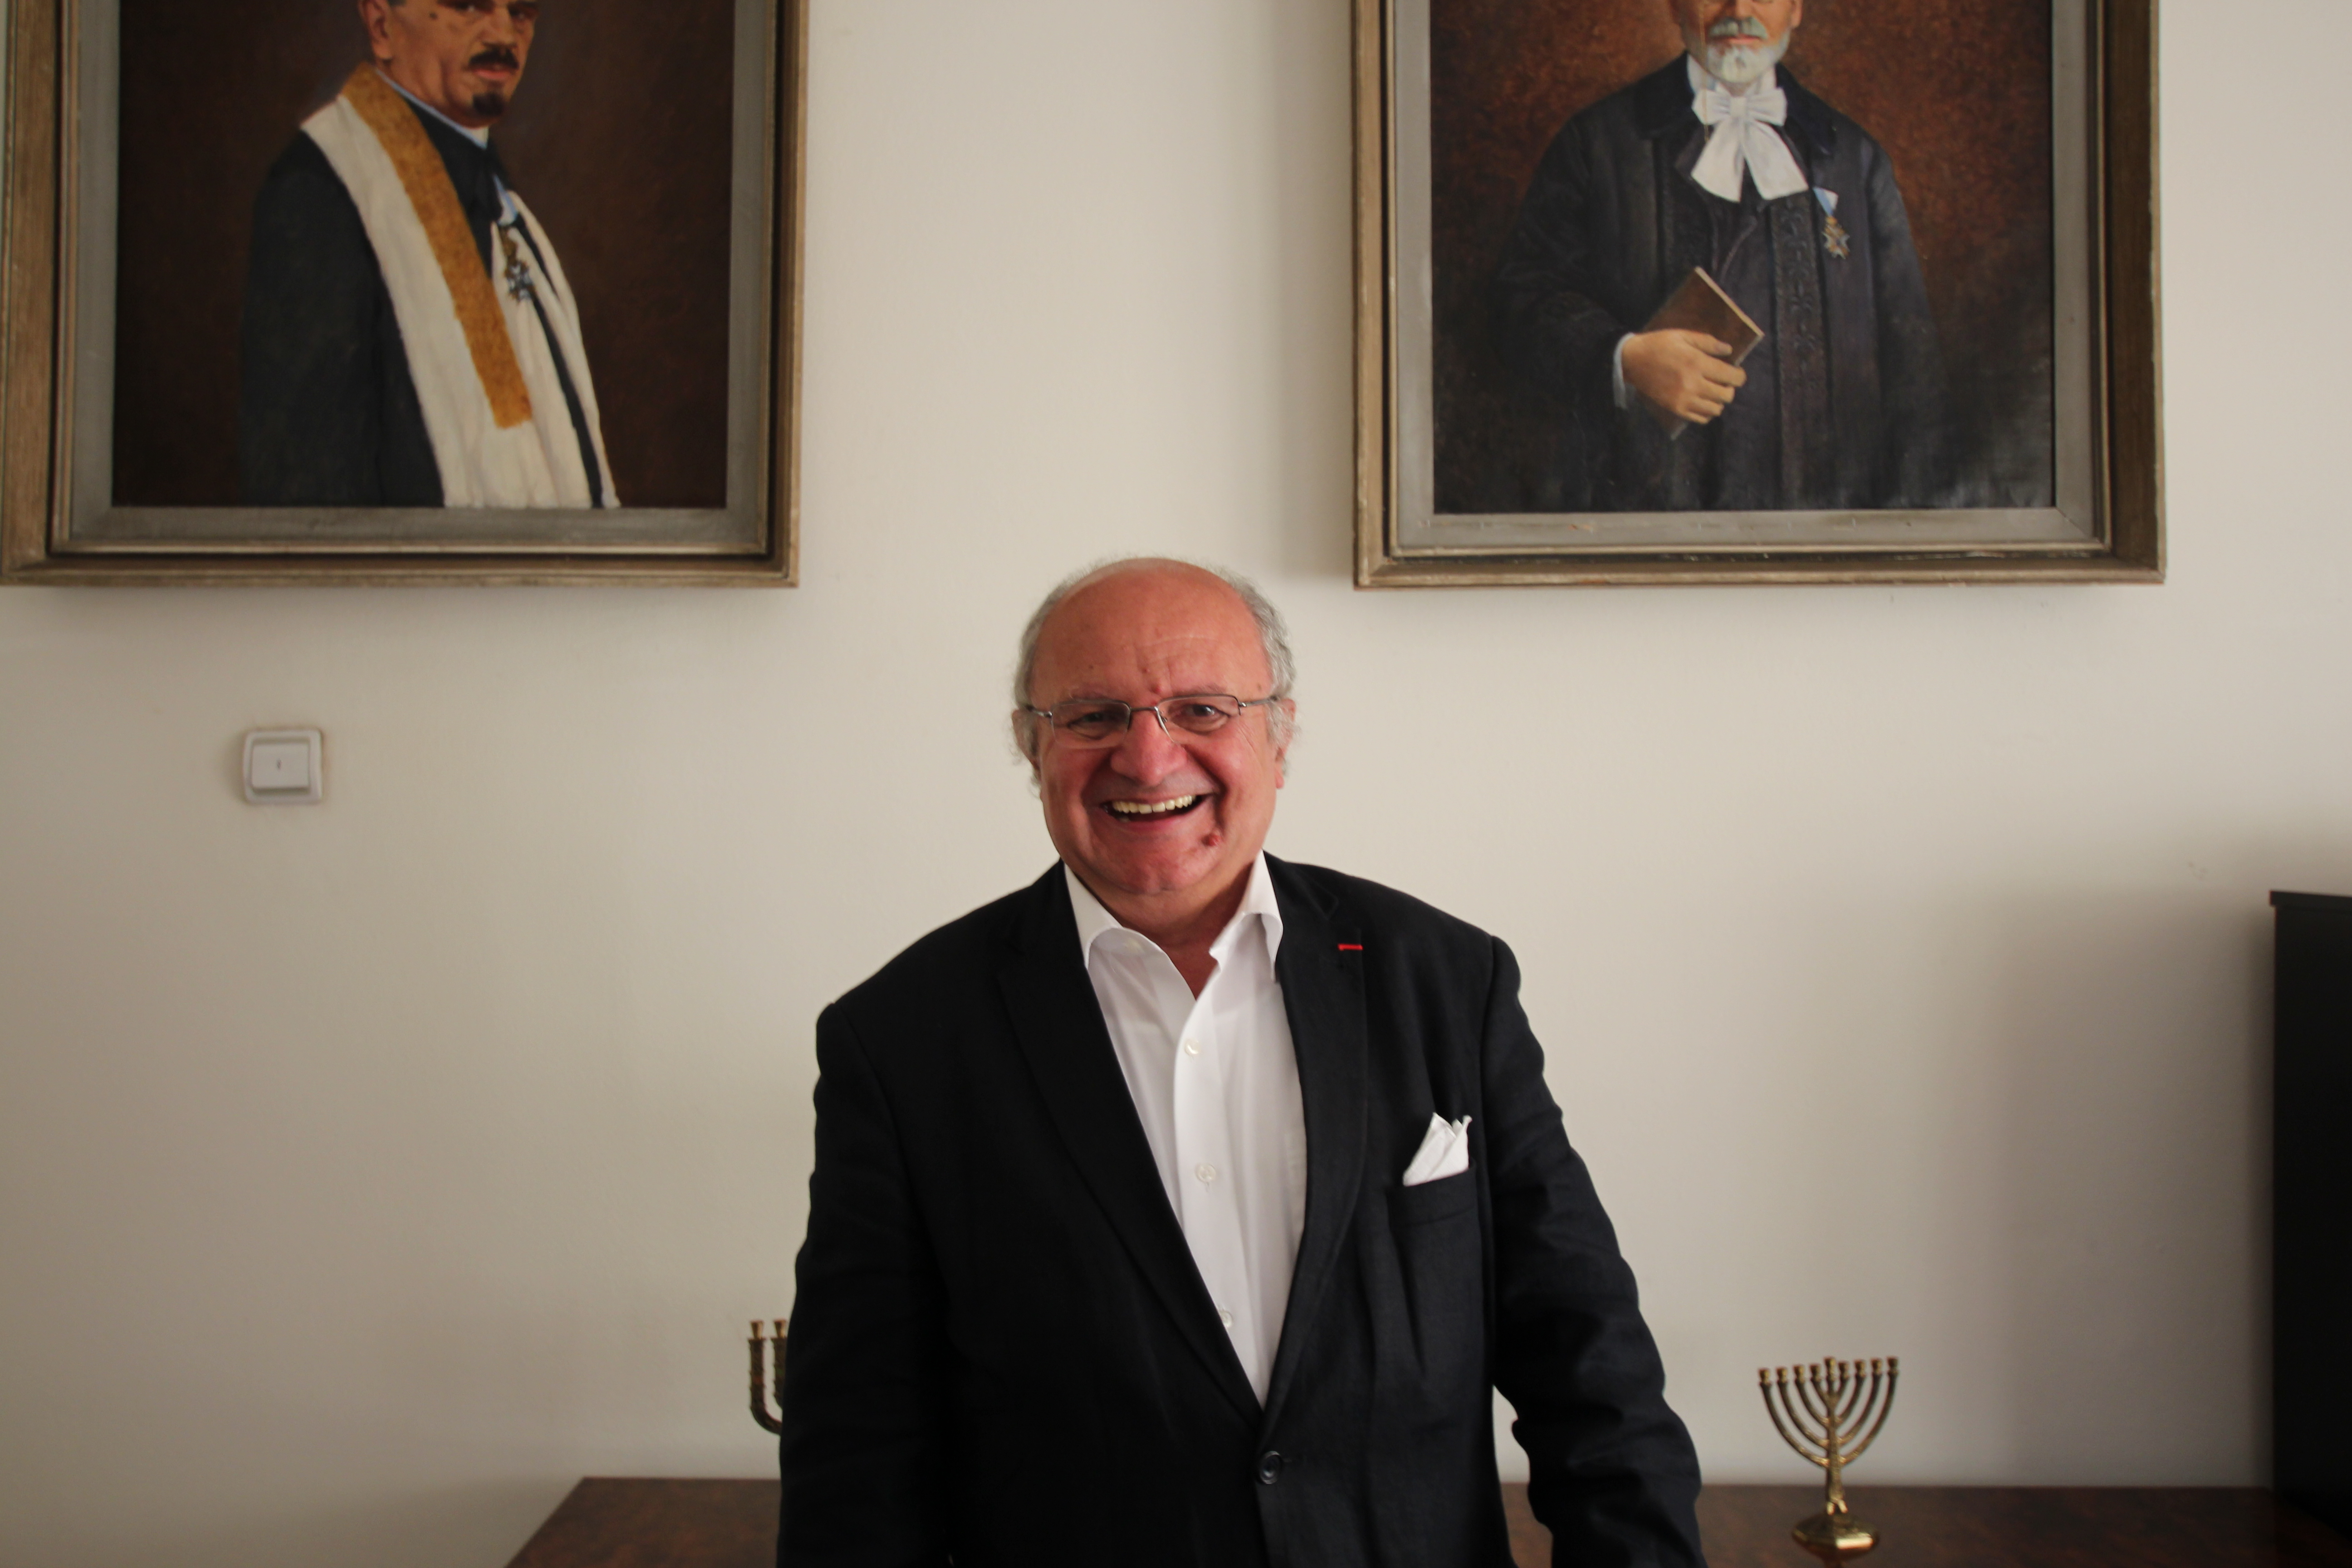 Jakob Finci in the premises of the Jewish community in Sarajevo (photo by Andrea Rossini)